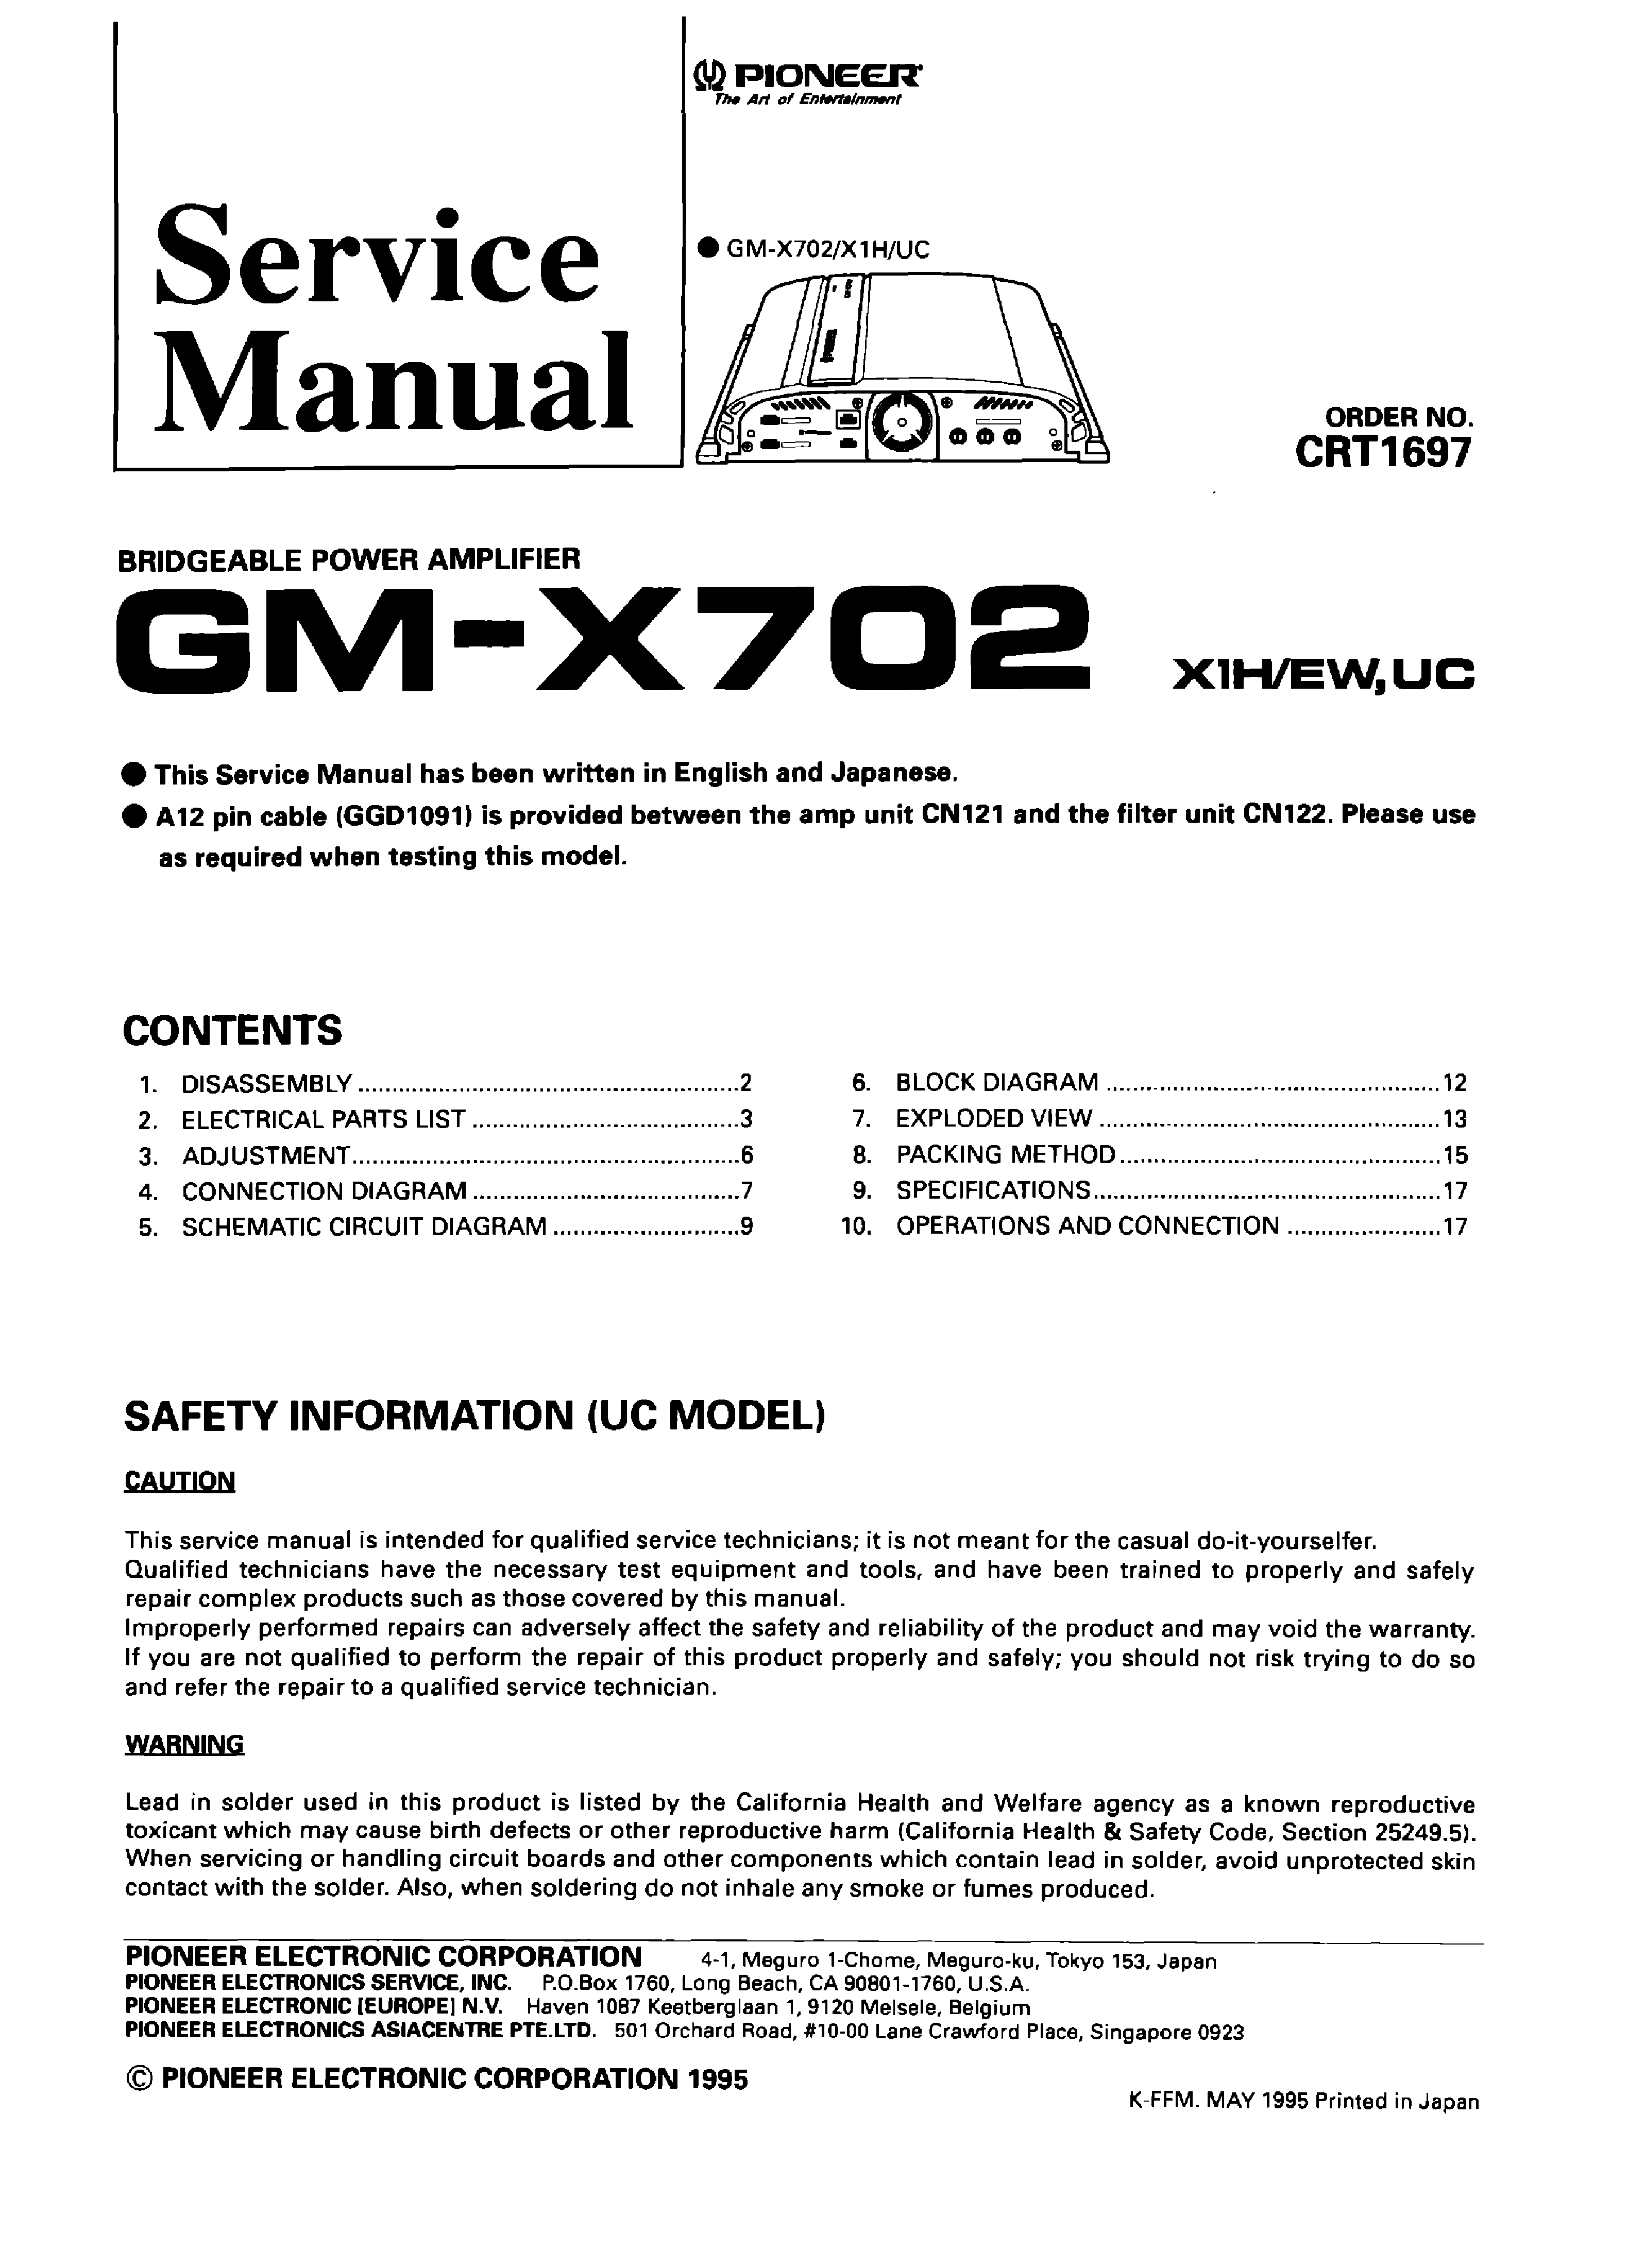 PIONEER GM-X702 SM service manual (1st page)